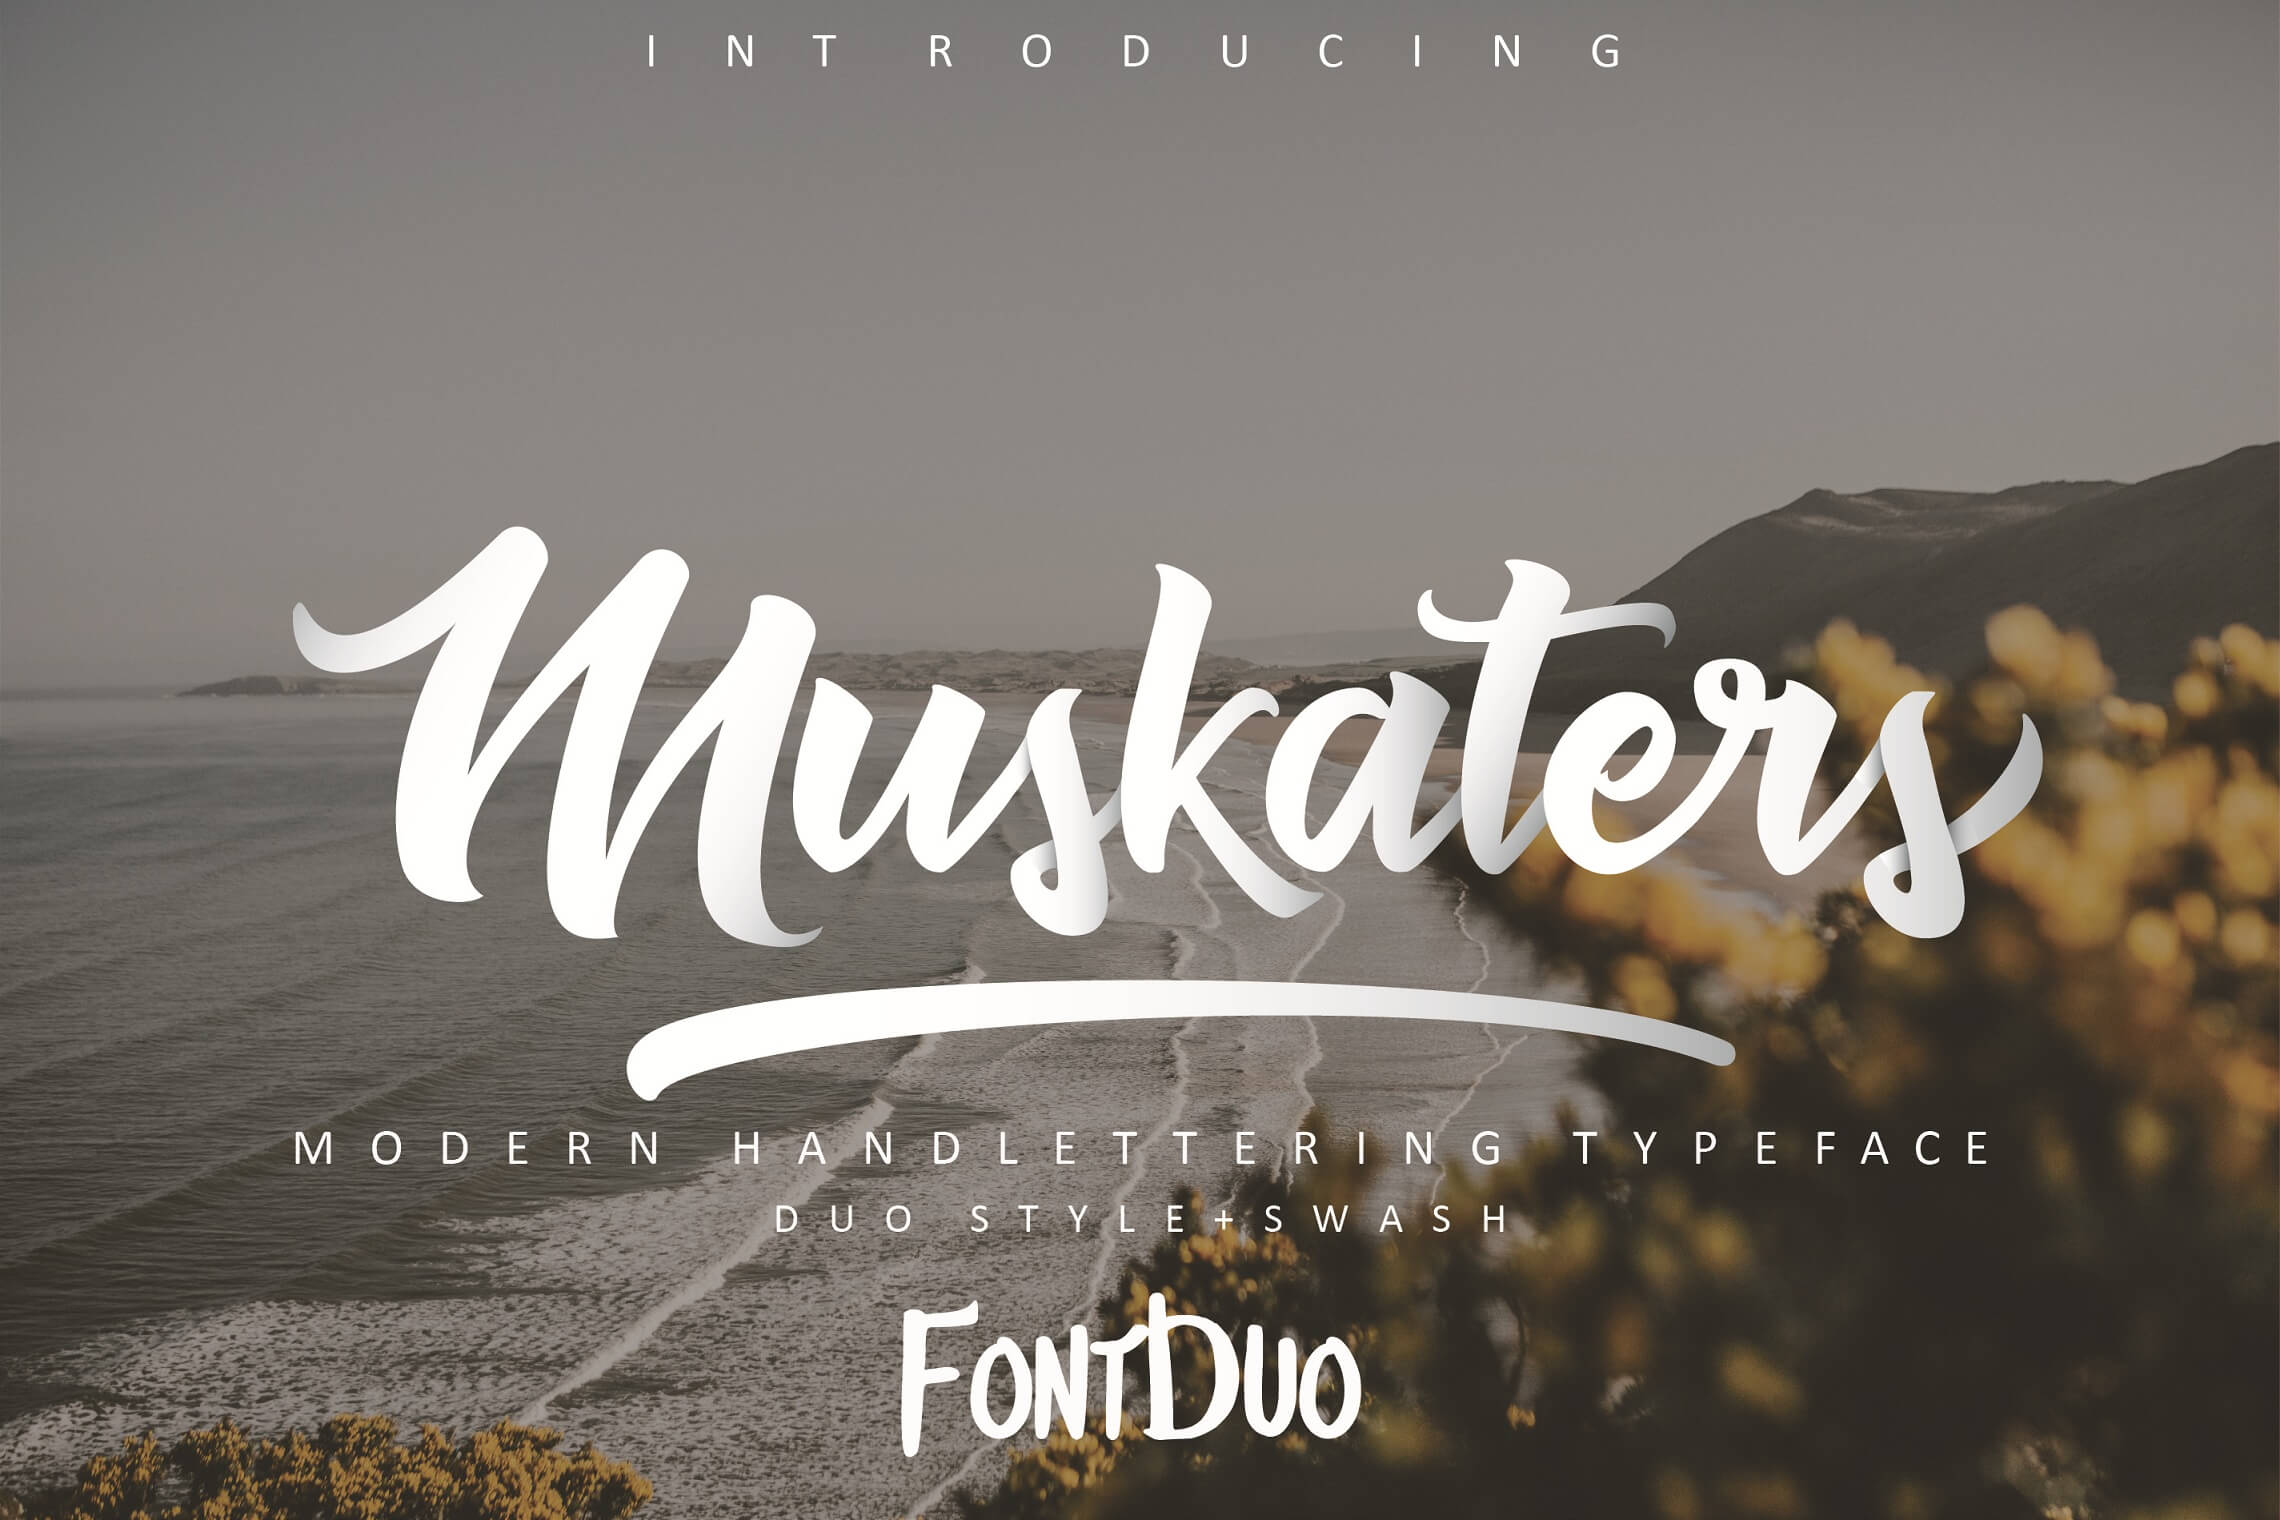 Lucida Calligraphy Regular Font Free Download 30 Gorgeous Free Handwritten Fonts Every Designer Should Have